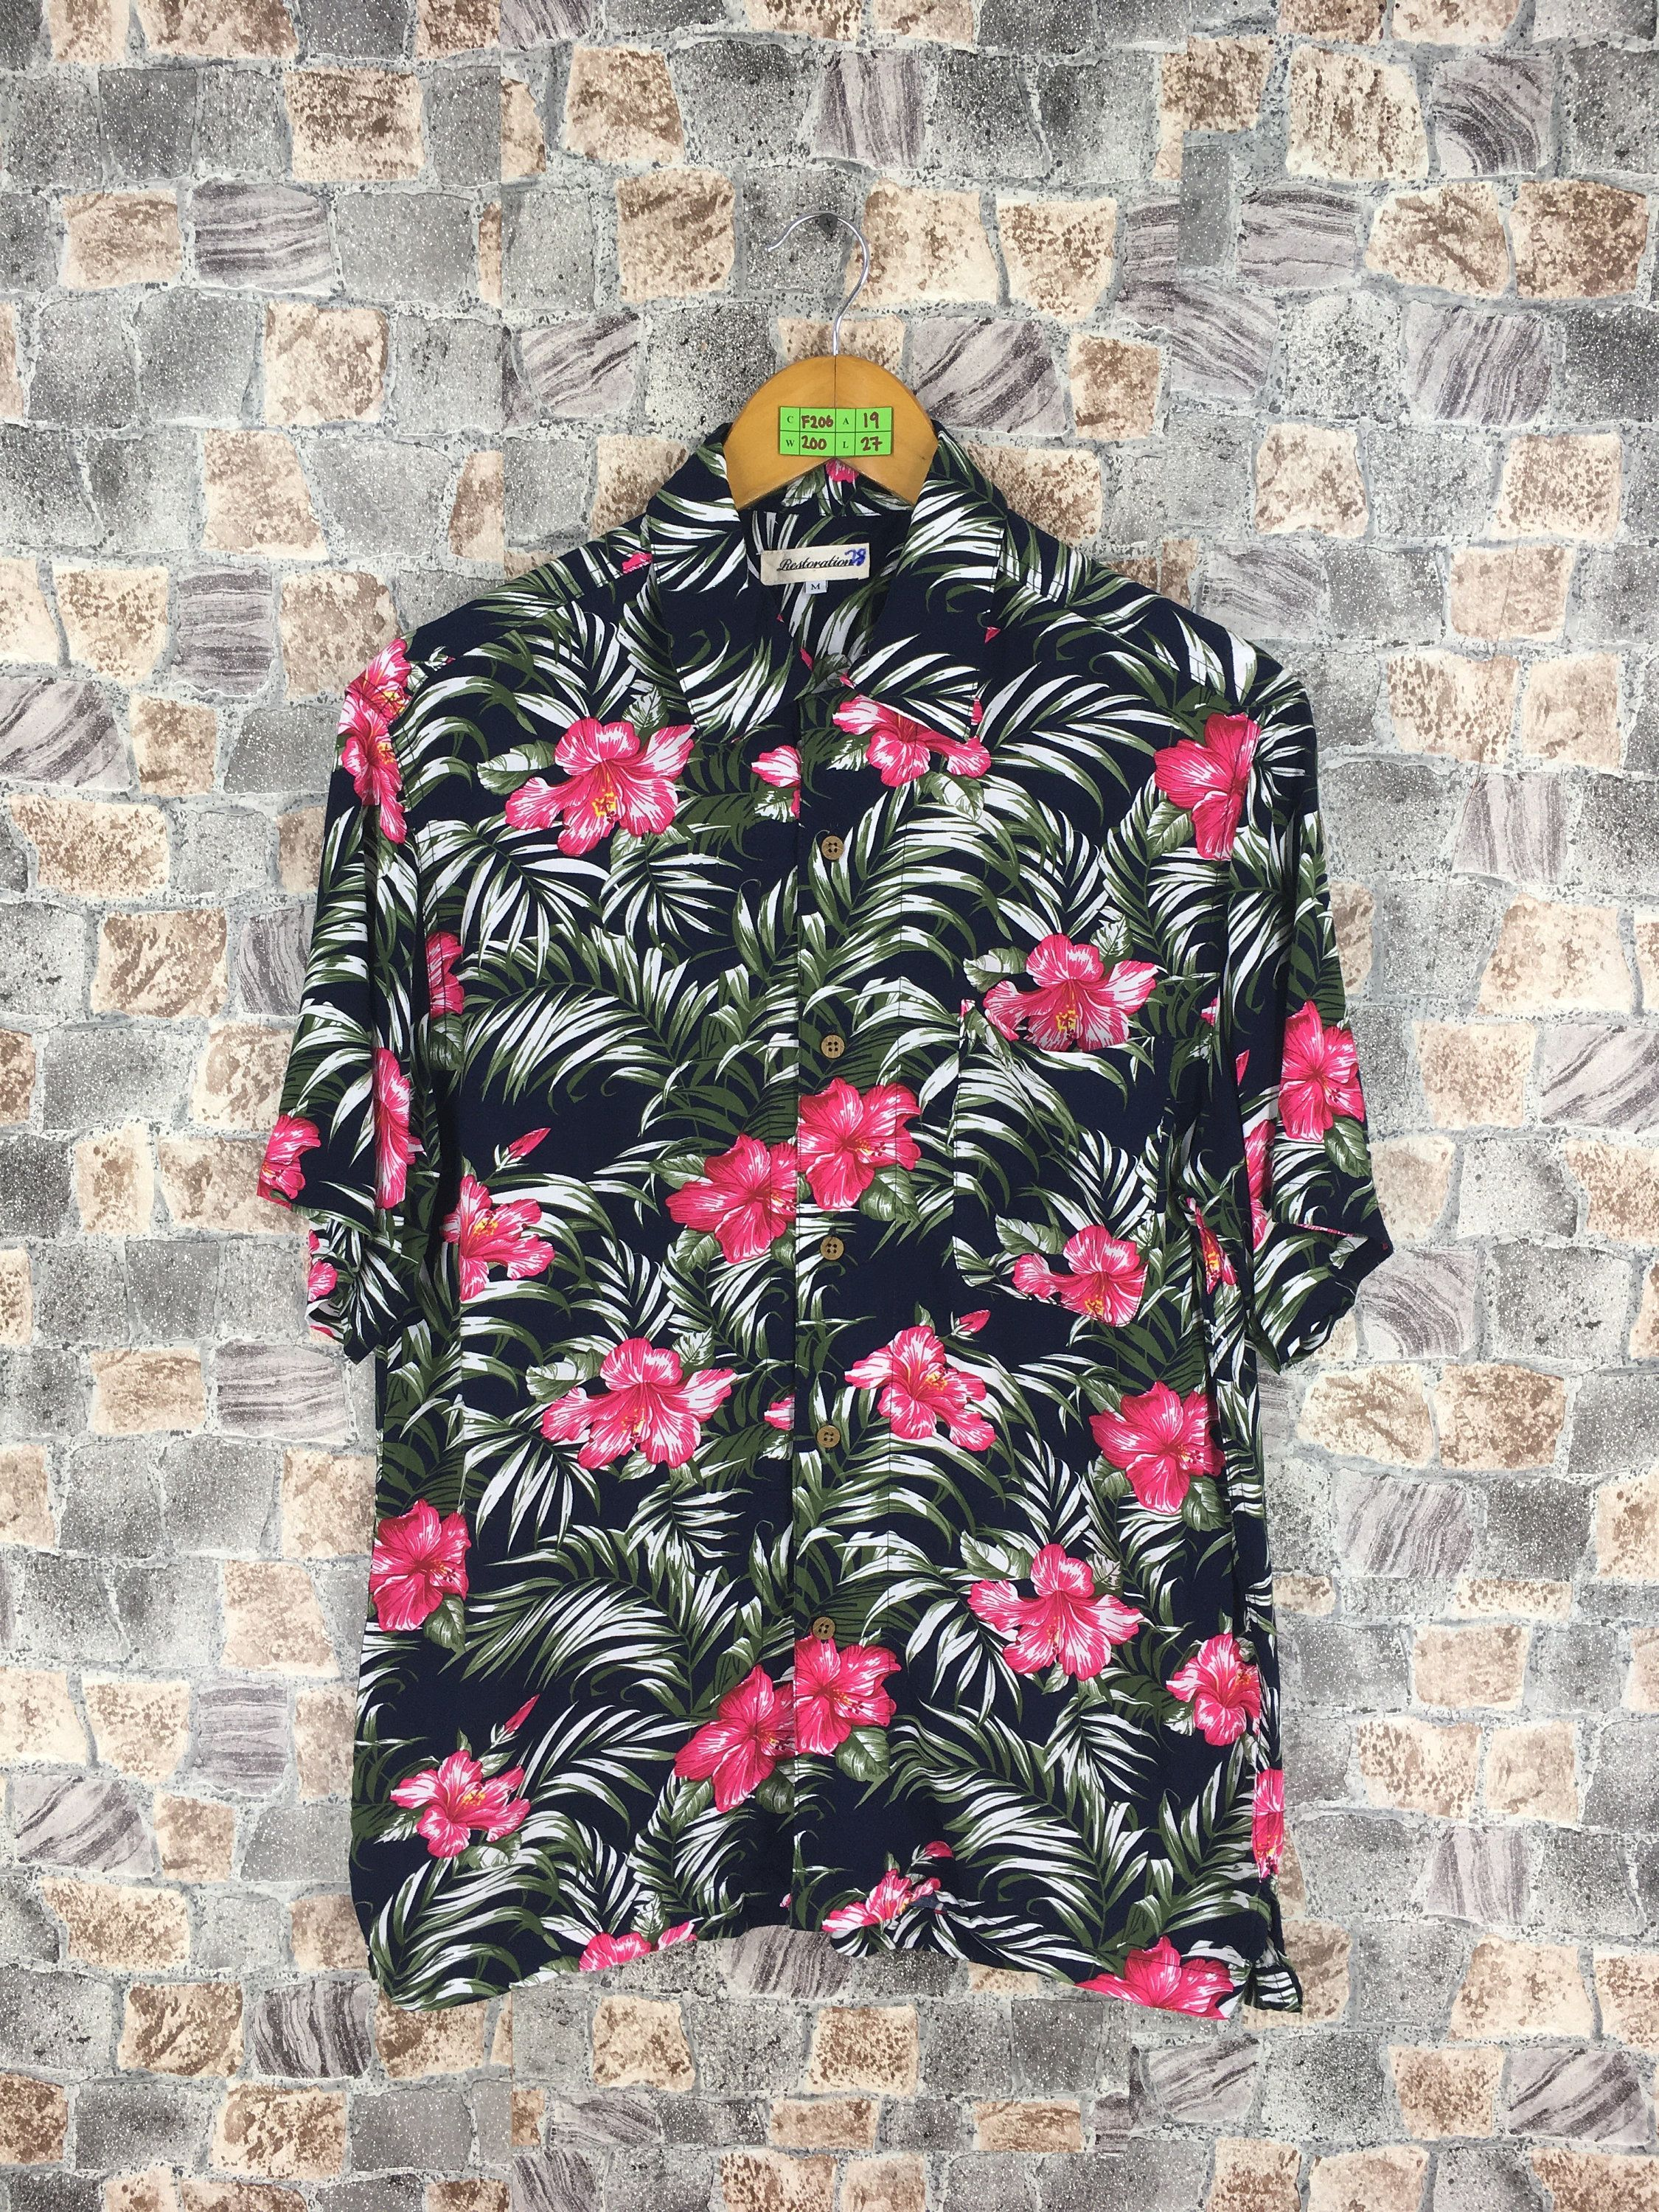 8202280fa Vintage Sunwear Floral Button Up Medium Hawaiian Hibiscus Multicolour Hawaii  Aloha Rockabilly Beach Surf Party Rock N Roll Shirt Size M by ...